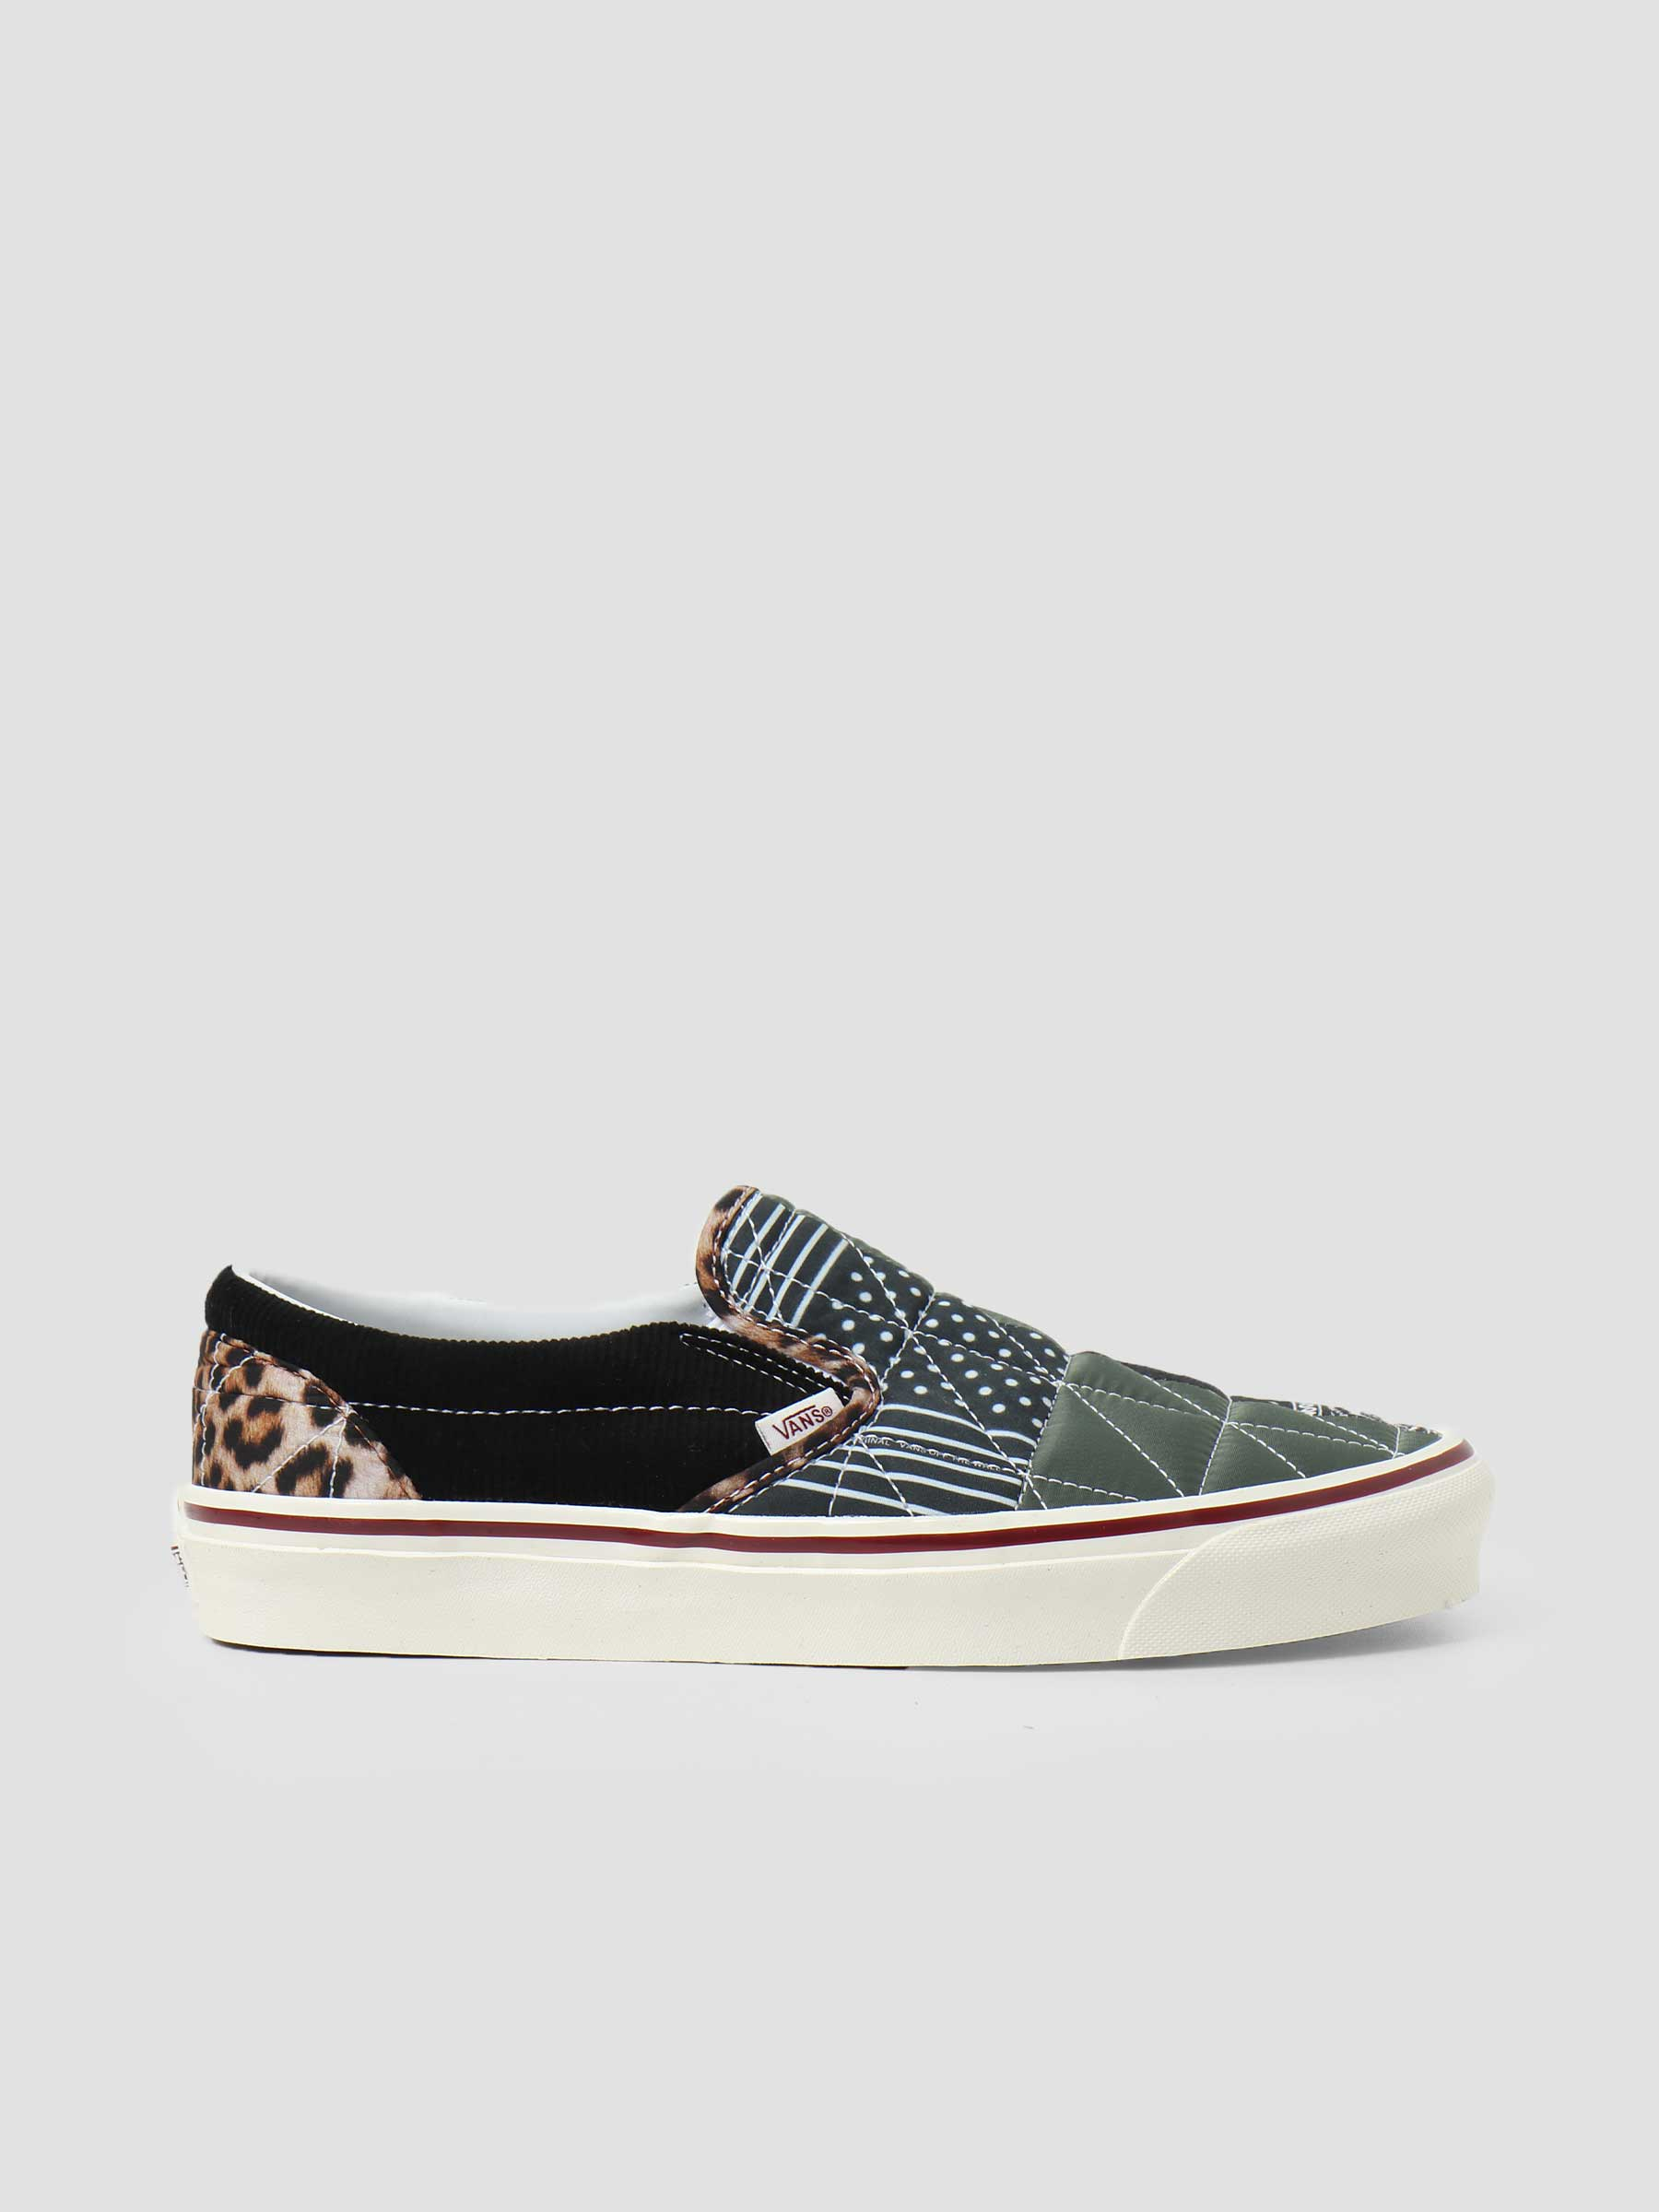 UA Classic Slip-On 98 DX Anaheim Factory Quilted Mix VN0A5HZN9GU1